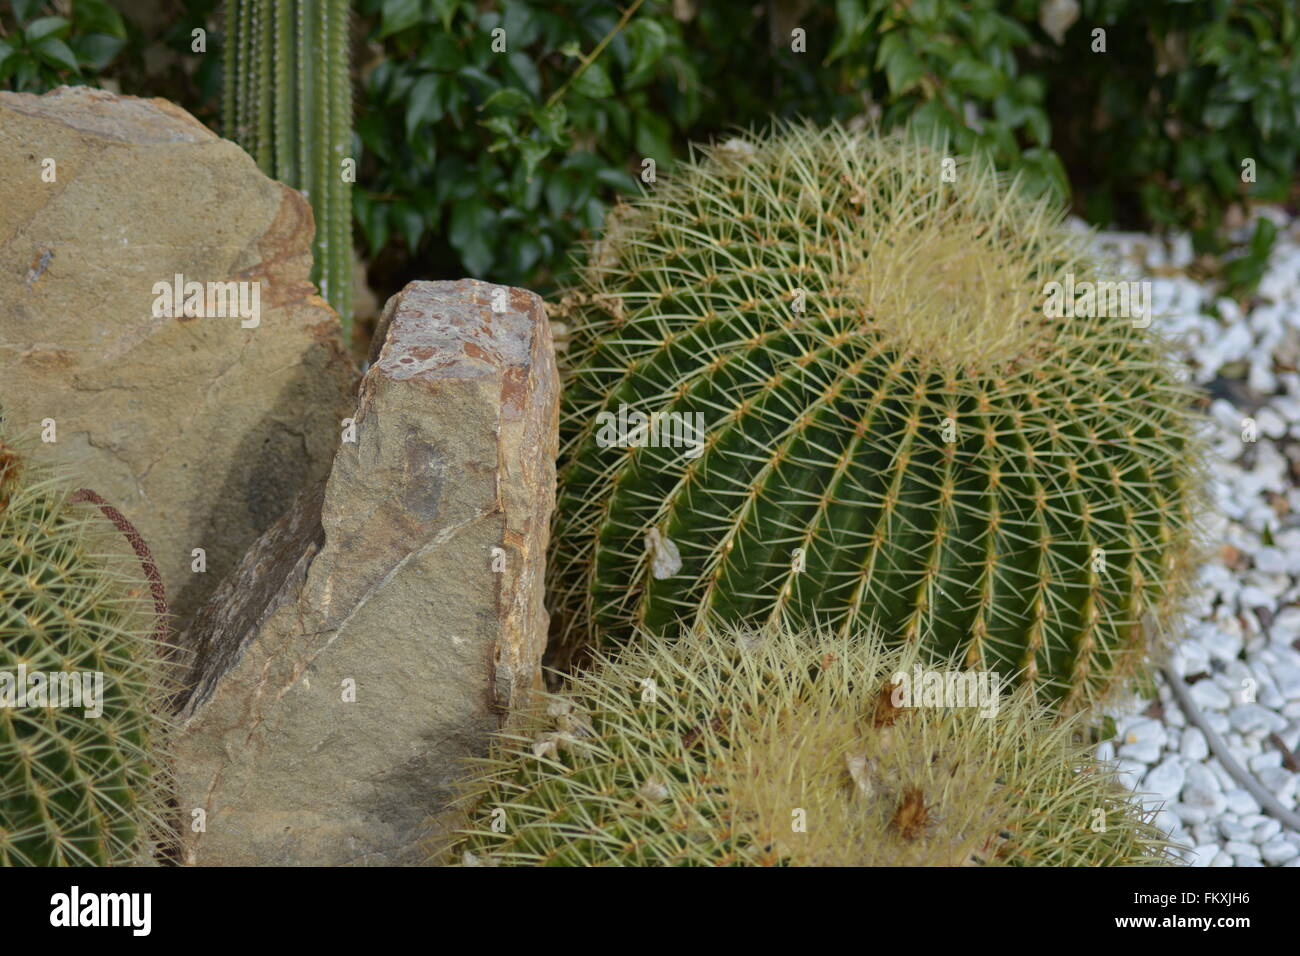 6 Lessons For Mediterranean Climate Gardening: Mediterranean Cactus Stock Photos & Mediterranean Cactus